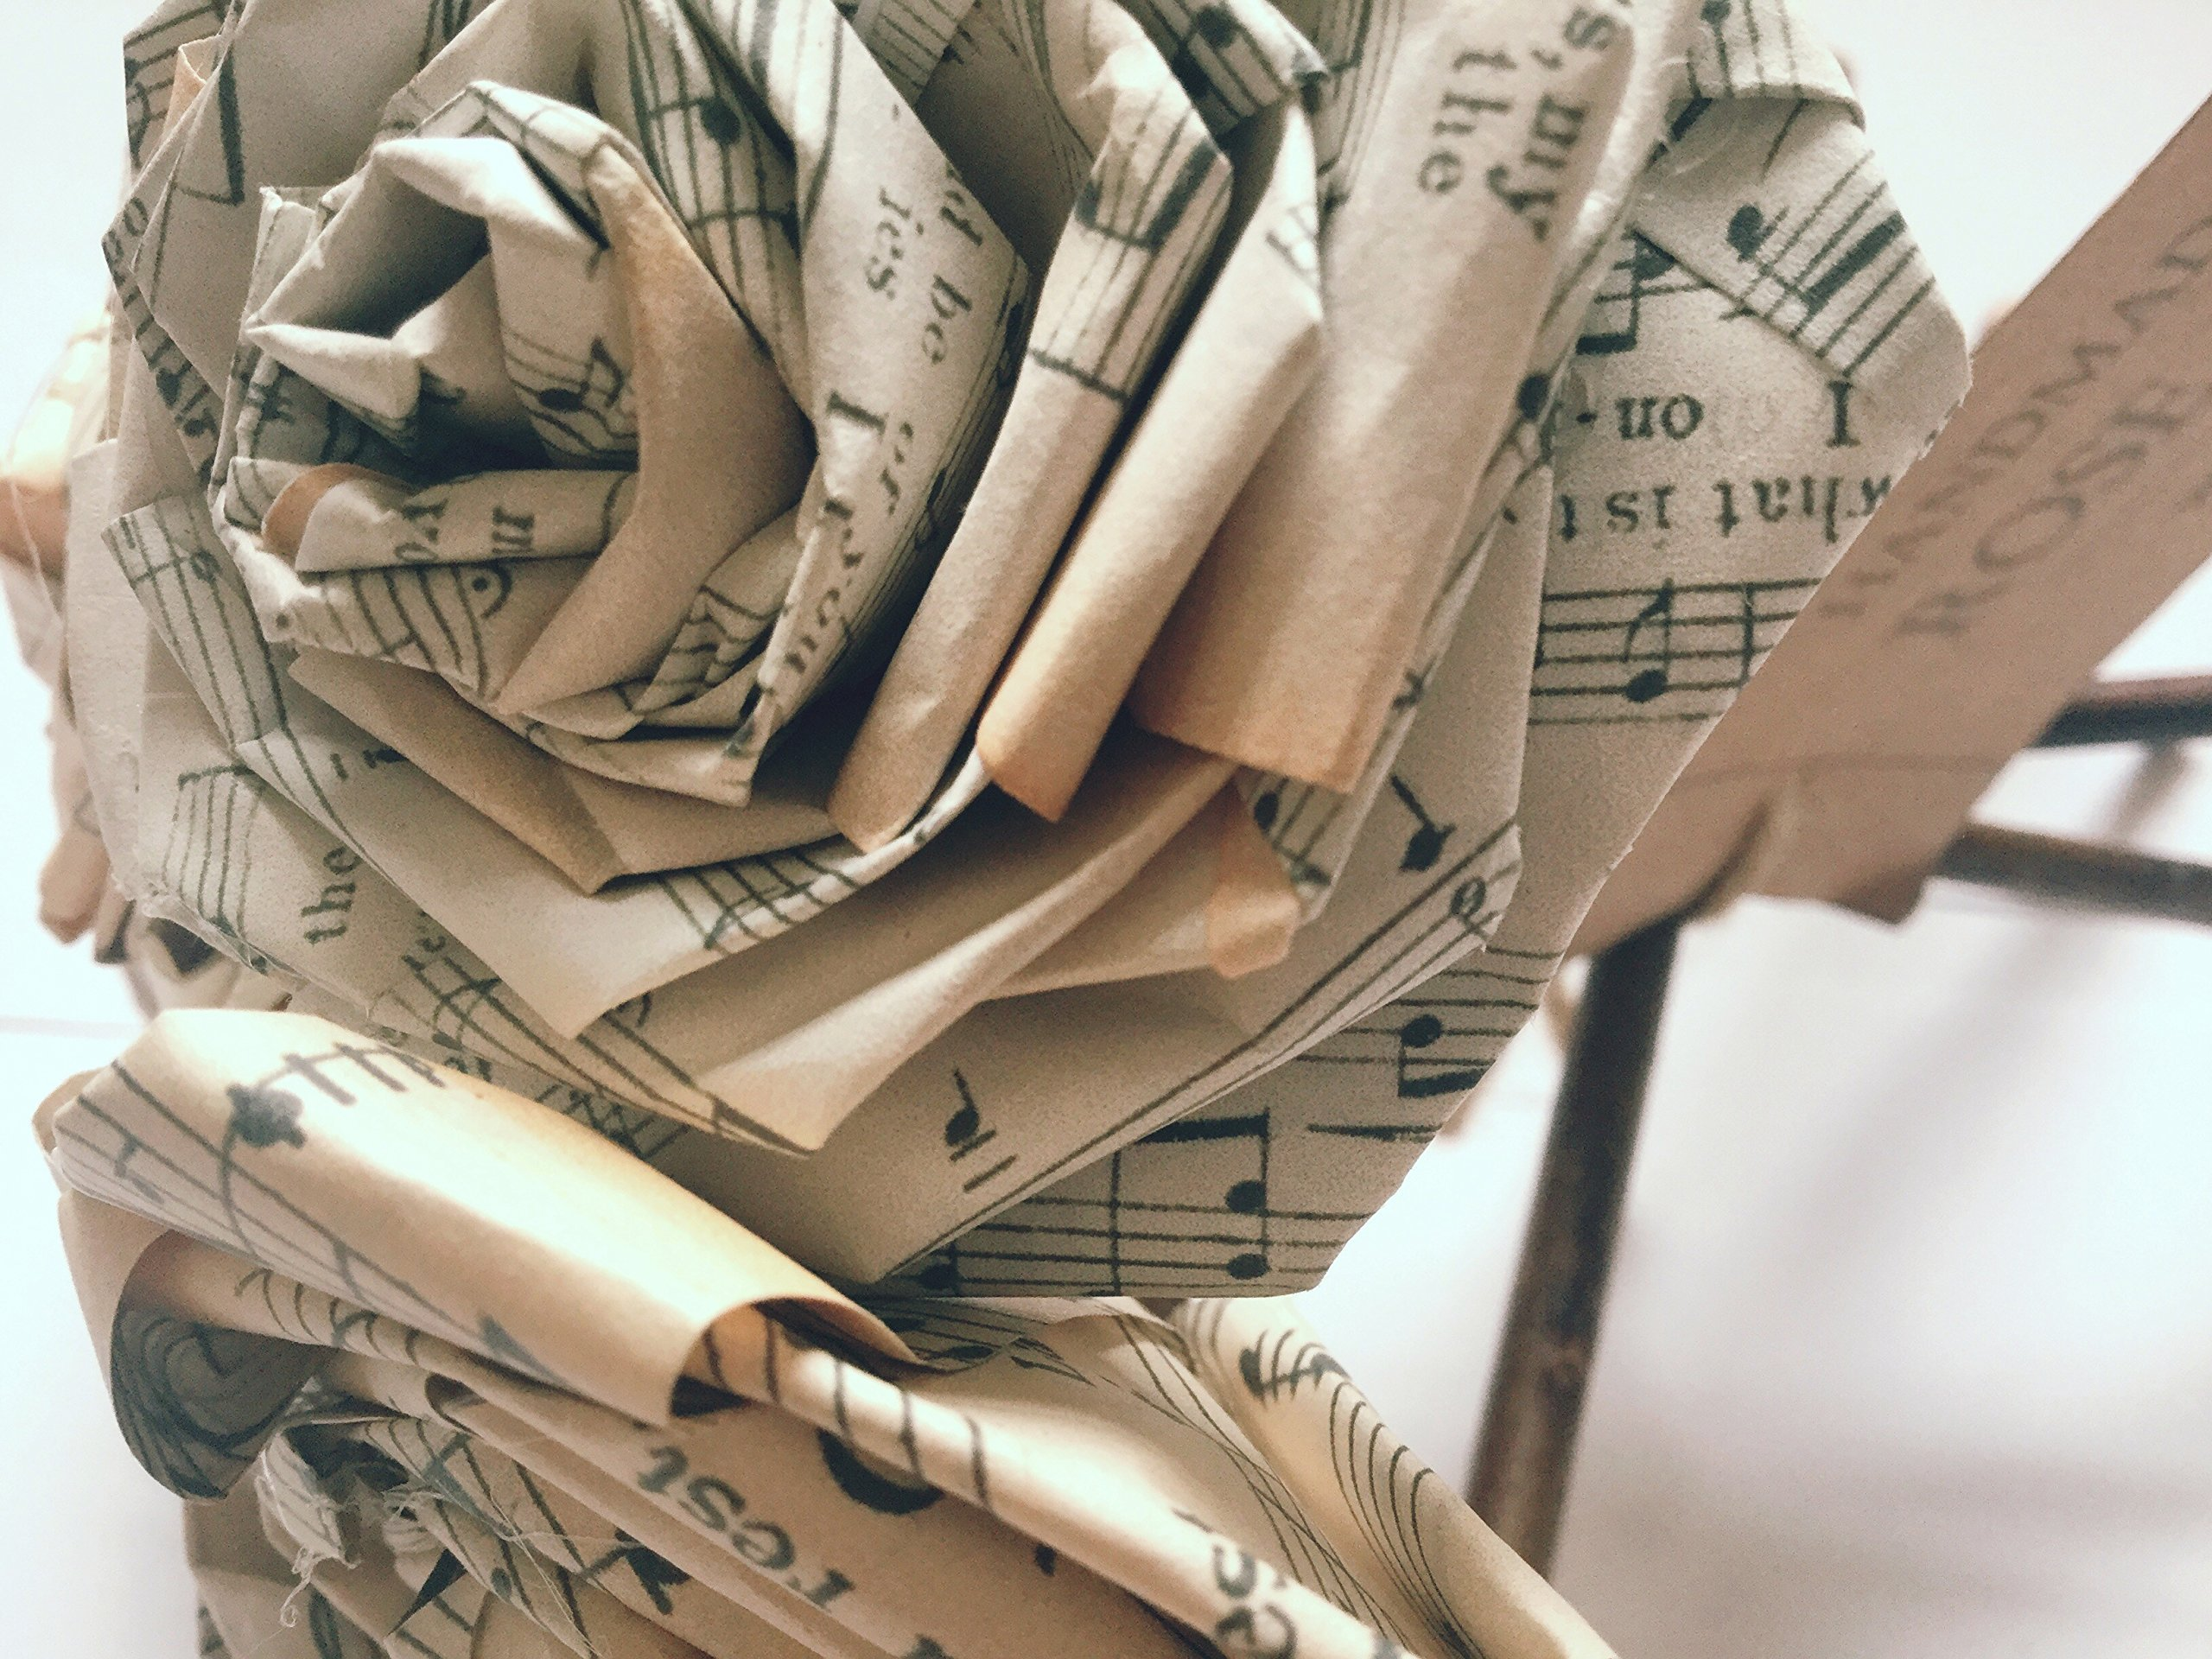 Old Music Notes Paper Rose Bouquet Vintage Home Decor Artificial Flora Flowers Gift for Her Him Music Lover Musician Wedding Paper Flower Bouquets Handmade (Bunch of 5-6)